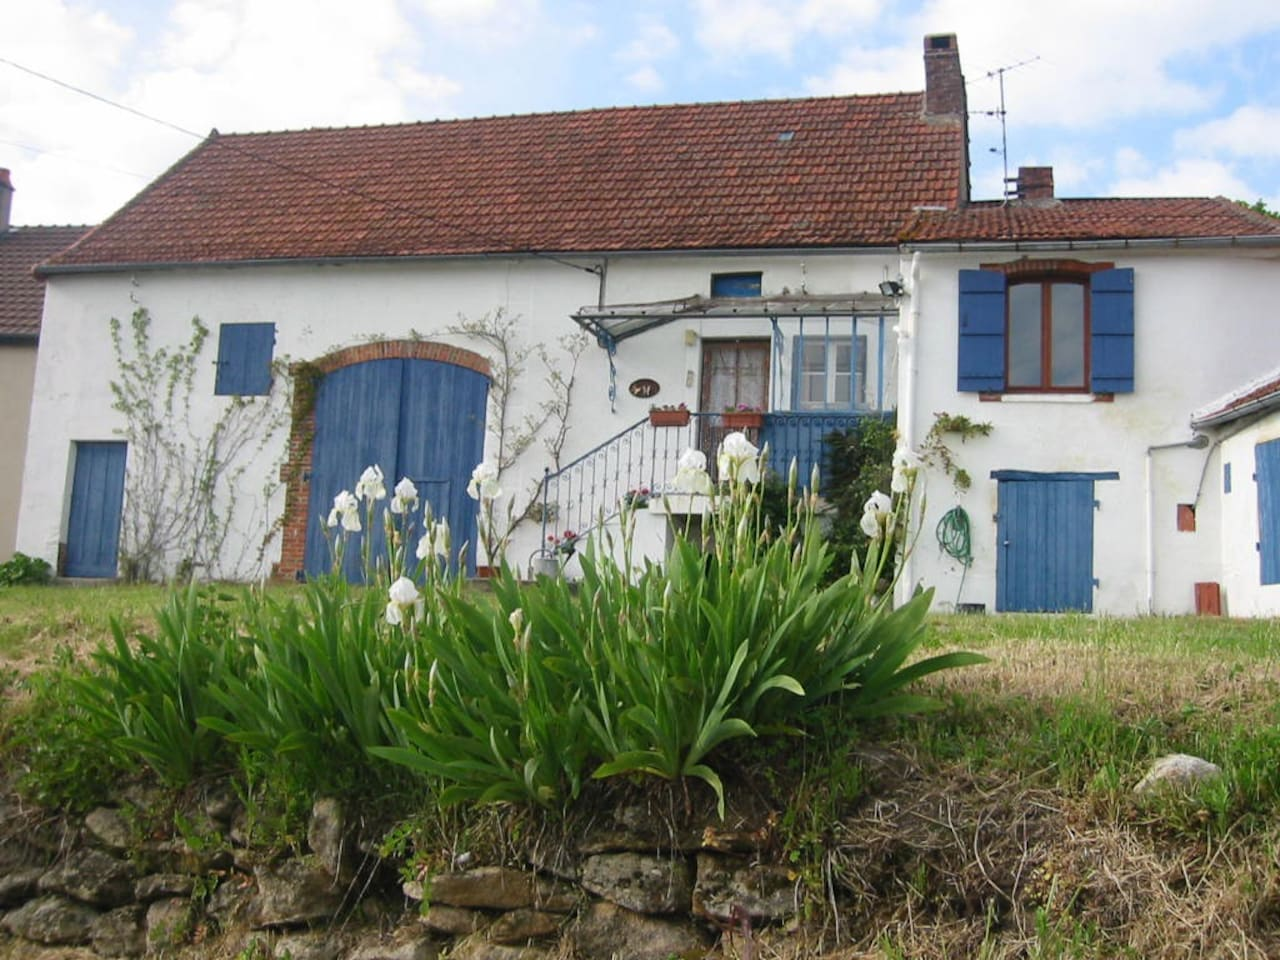 www.holidaycottageinburgundy.iowners.net